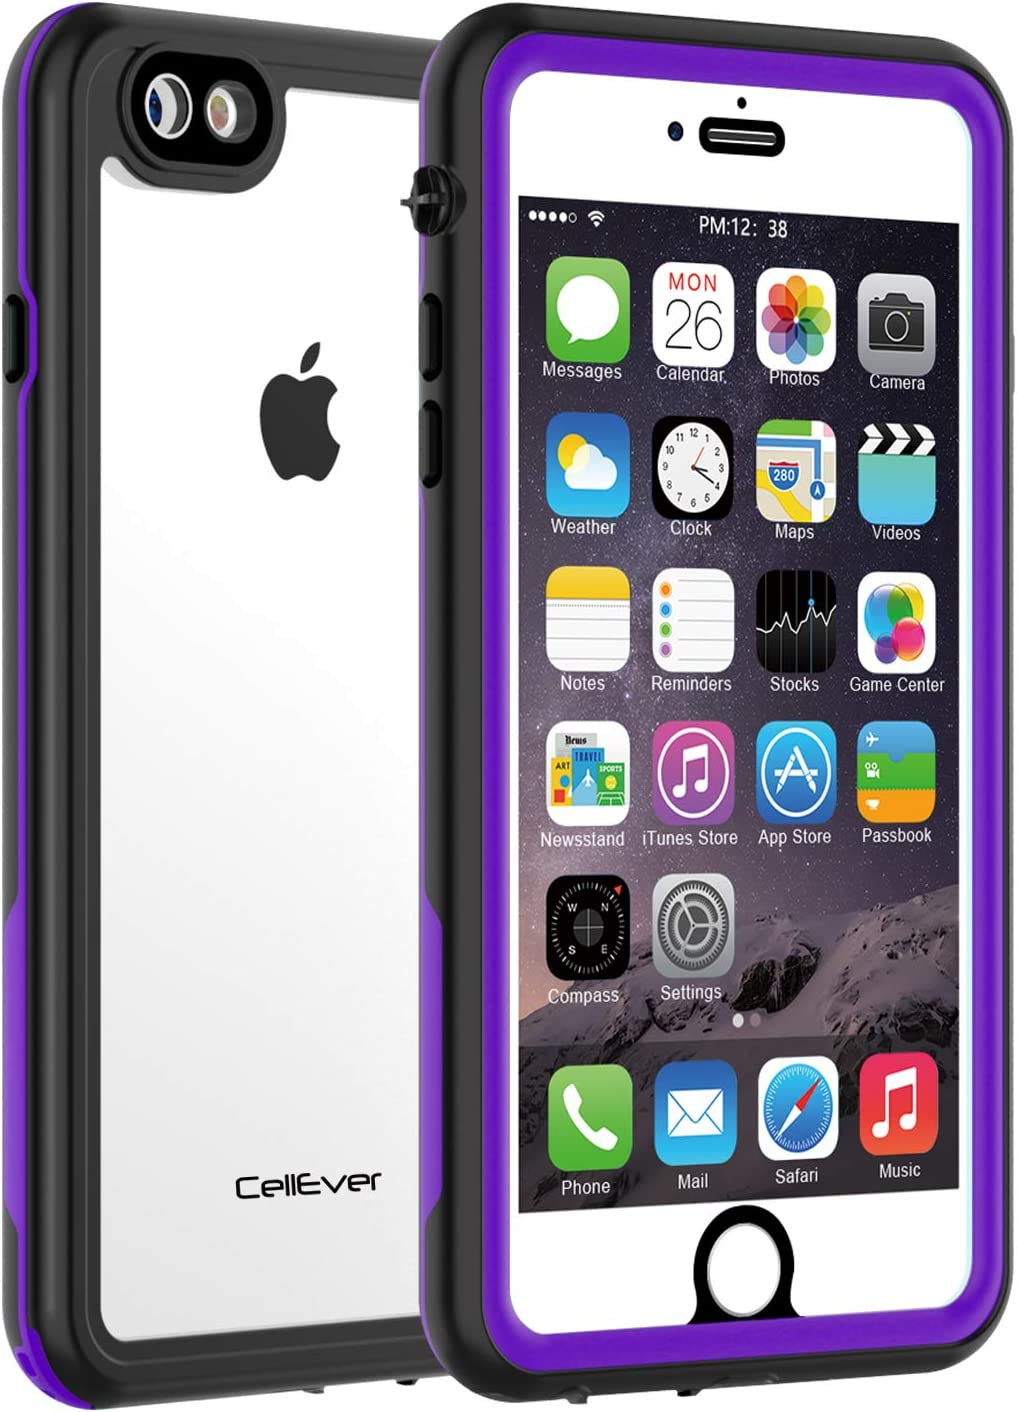 CellEver iPhone 6 / 6s Waterproof Case Shockproof IP68 Certified SandProof Snowproof Full Body Protective Clear Transparent Cover Fits Apple iPhone 6 and iPhone 6s (4.7 Inch) KZ Purple